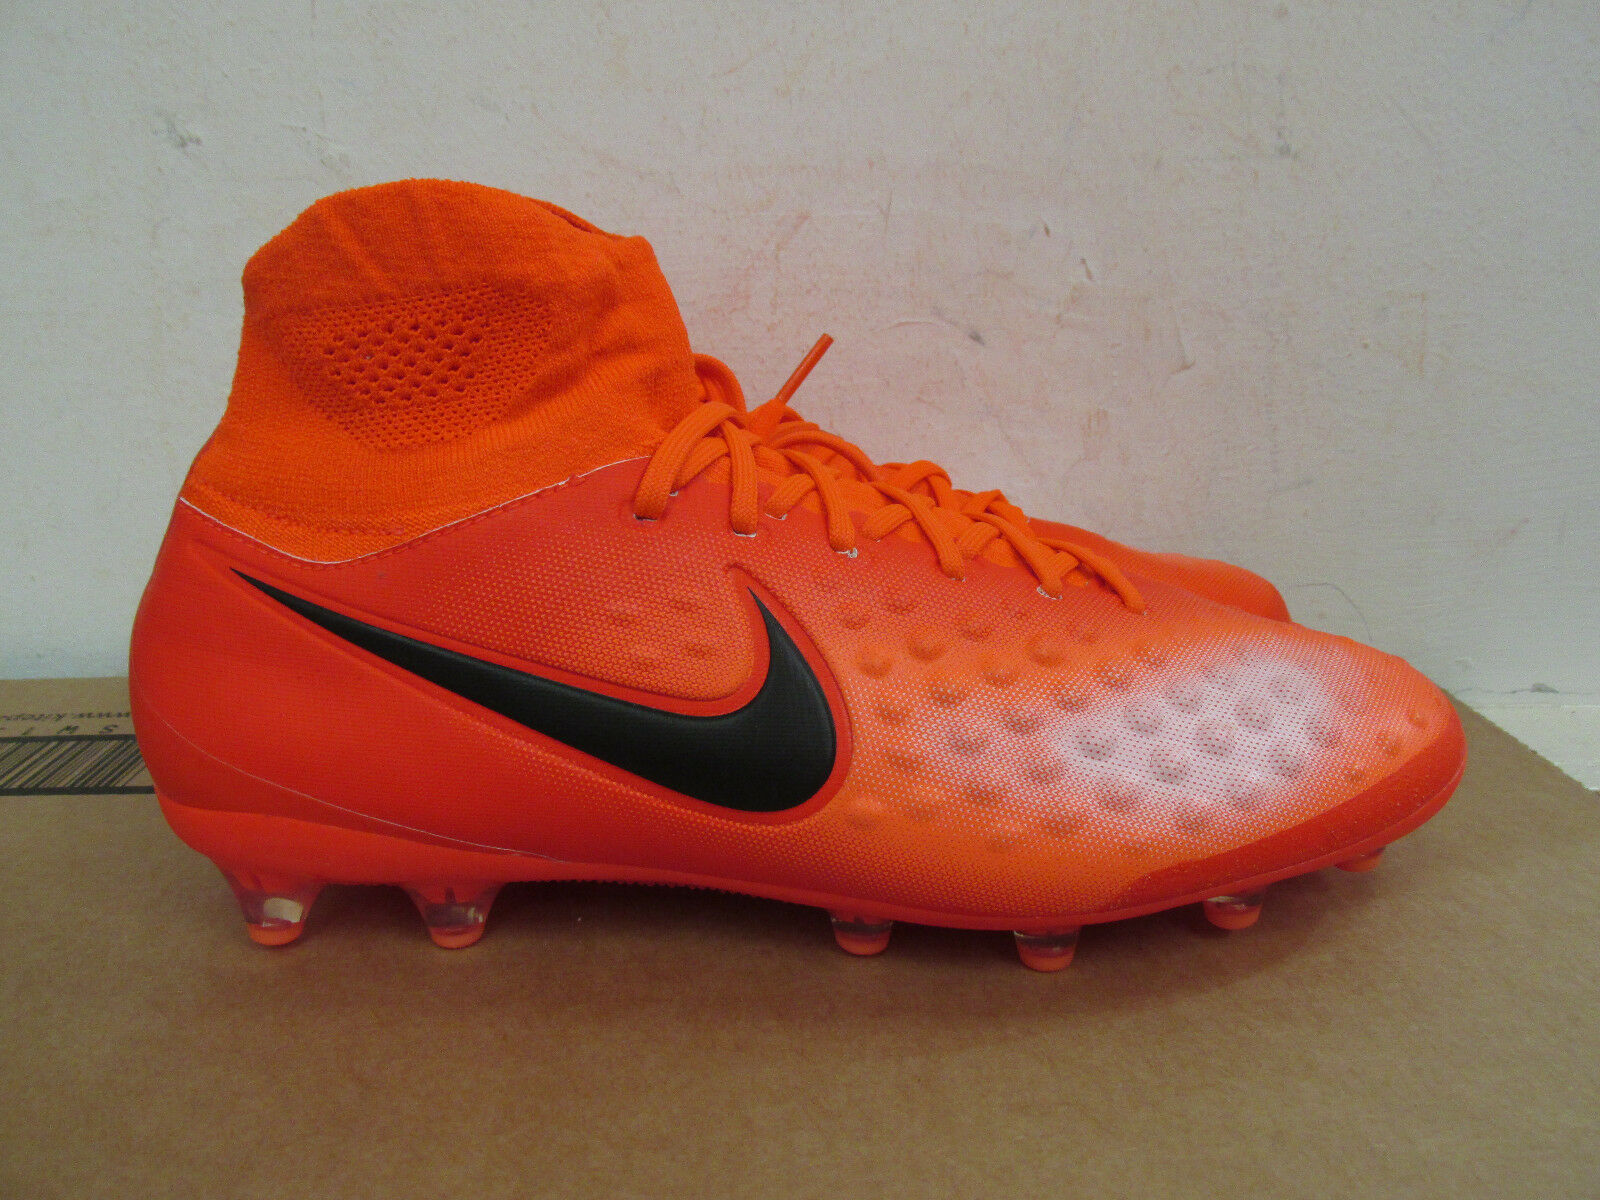 Nike Magista Orden II AG-Pro Mens Football Boots 843811 806 SAMPLE